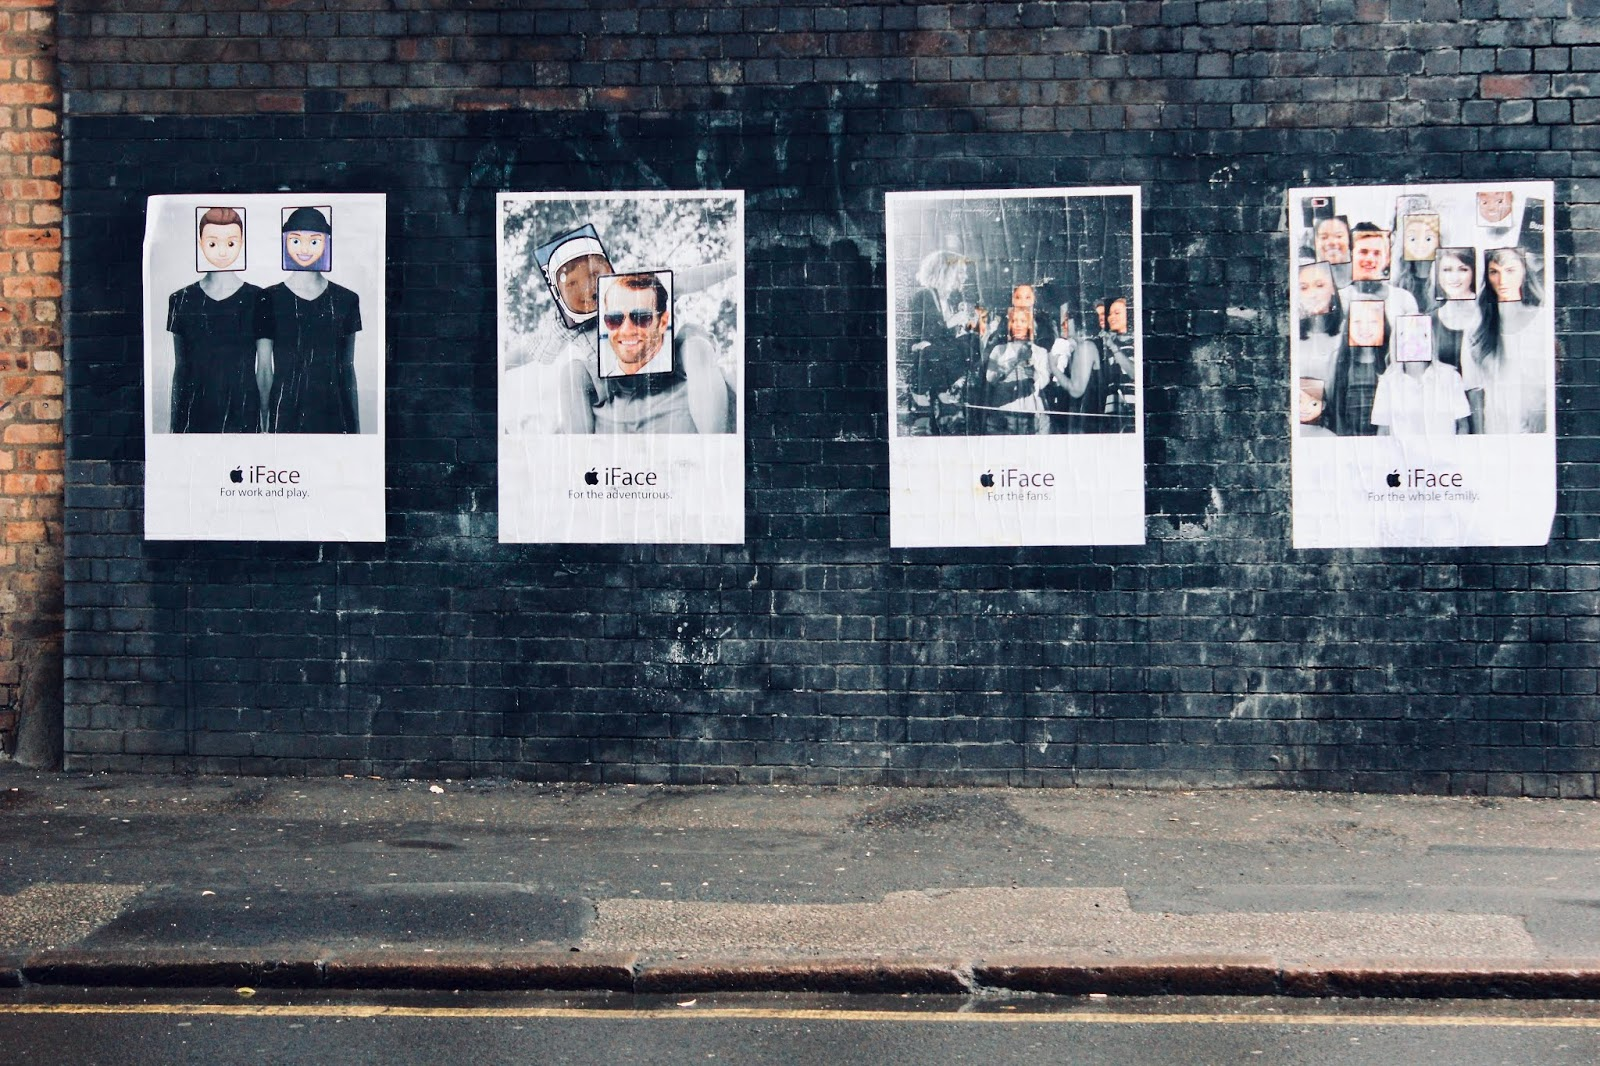 Four 'iFace' advertisements on a brick wall